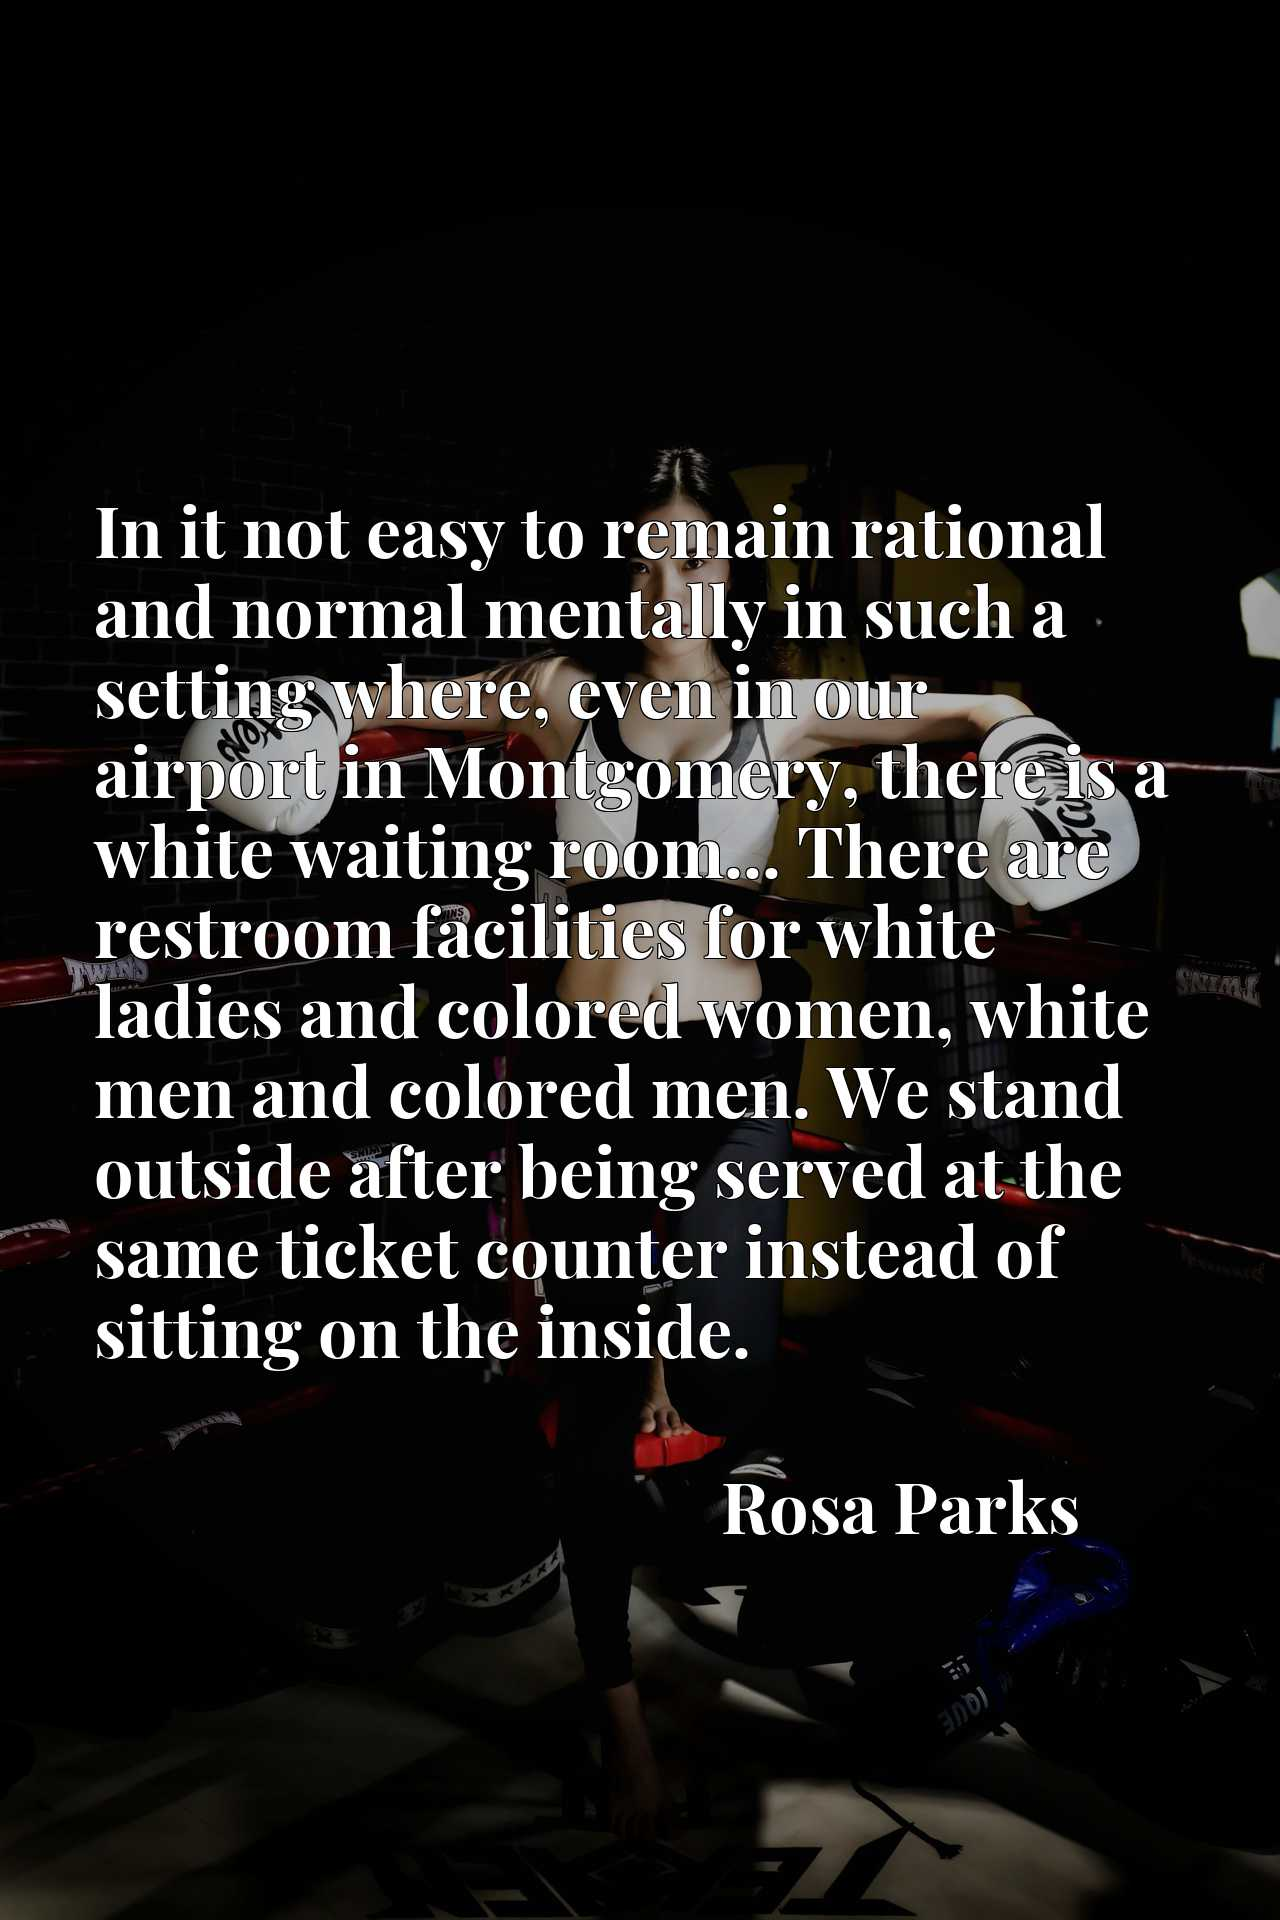 In it not easy to remain rational and normal mentally in such a setting where, even in our airport in Montgomery, there is a white waiting room... There are restroom facilities for white ladies and colored women, white men and colored men. We stand outside after being served at the same ticket counter instead of sitting on the inside.